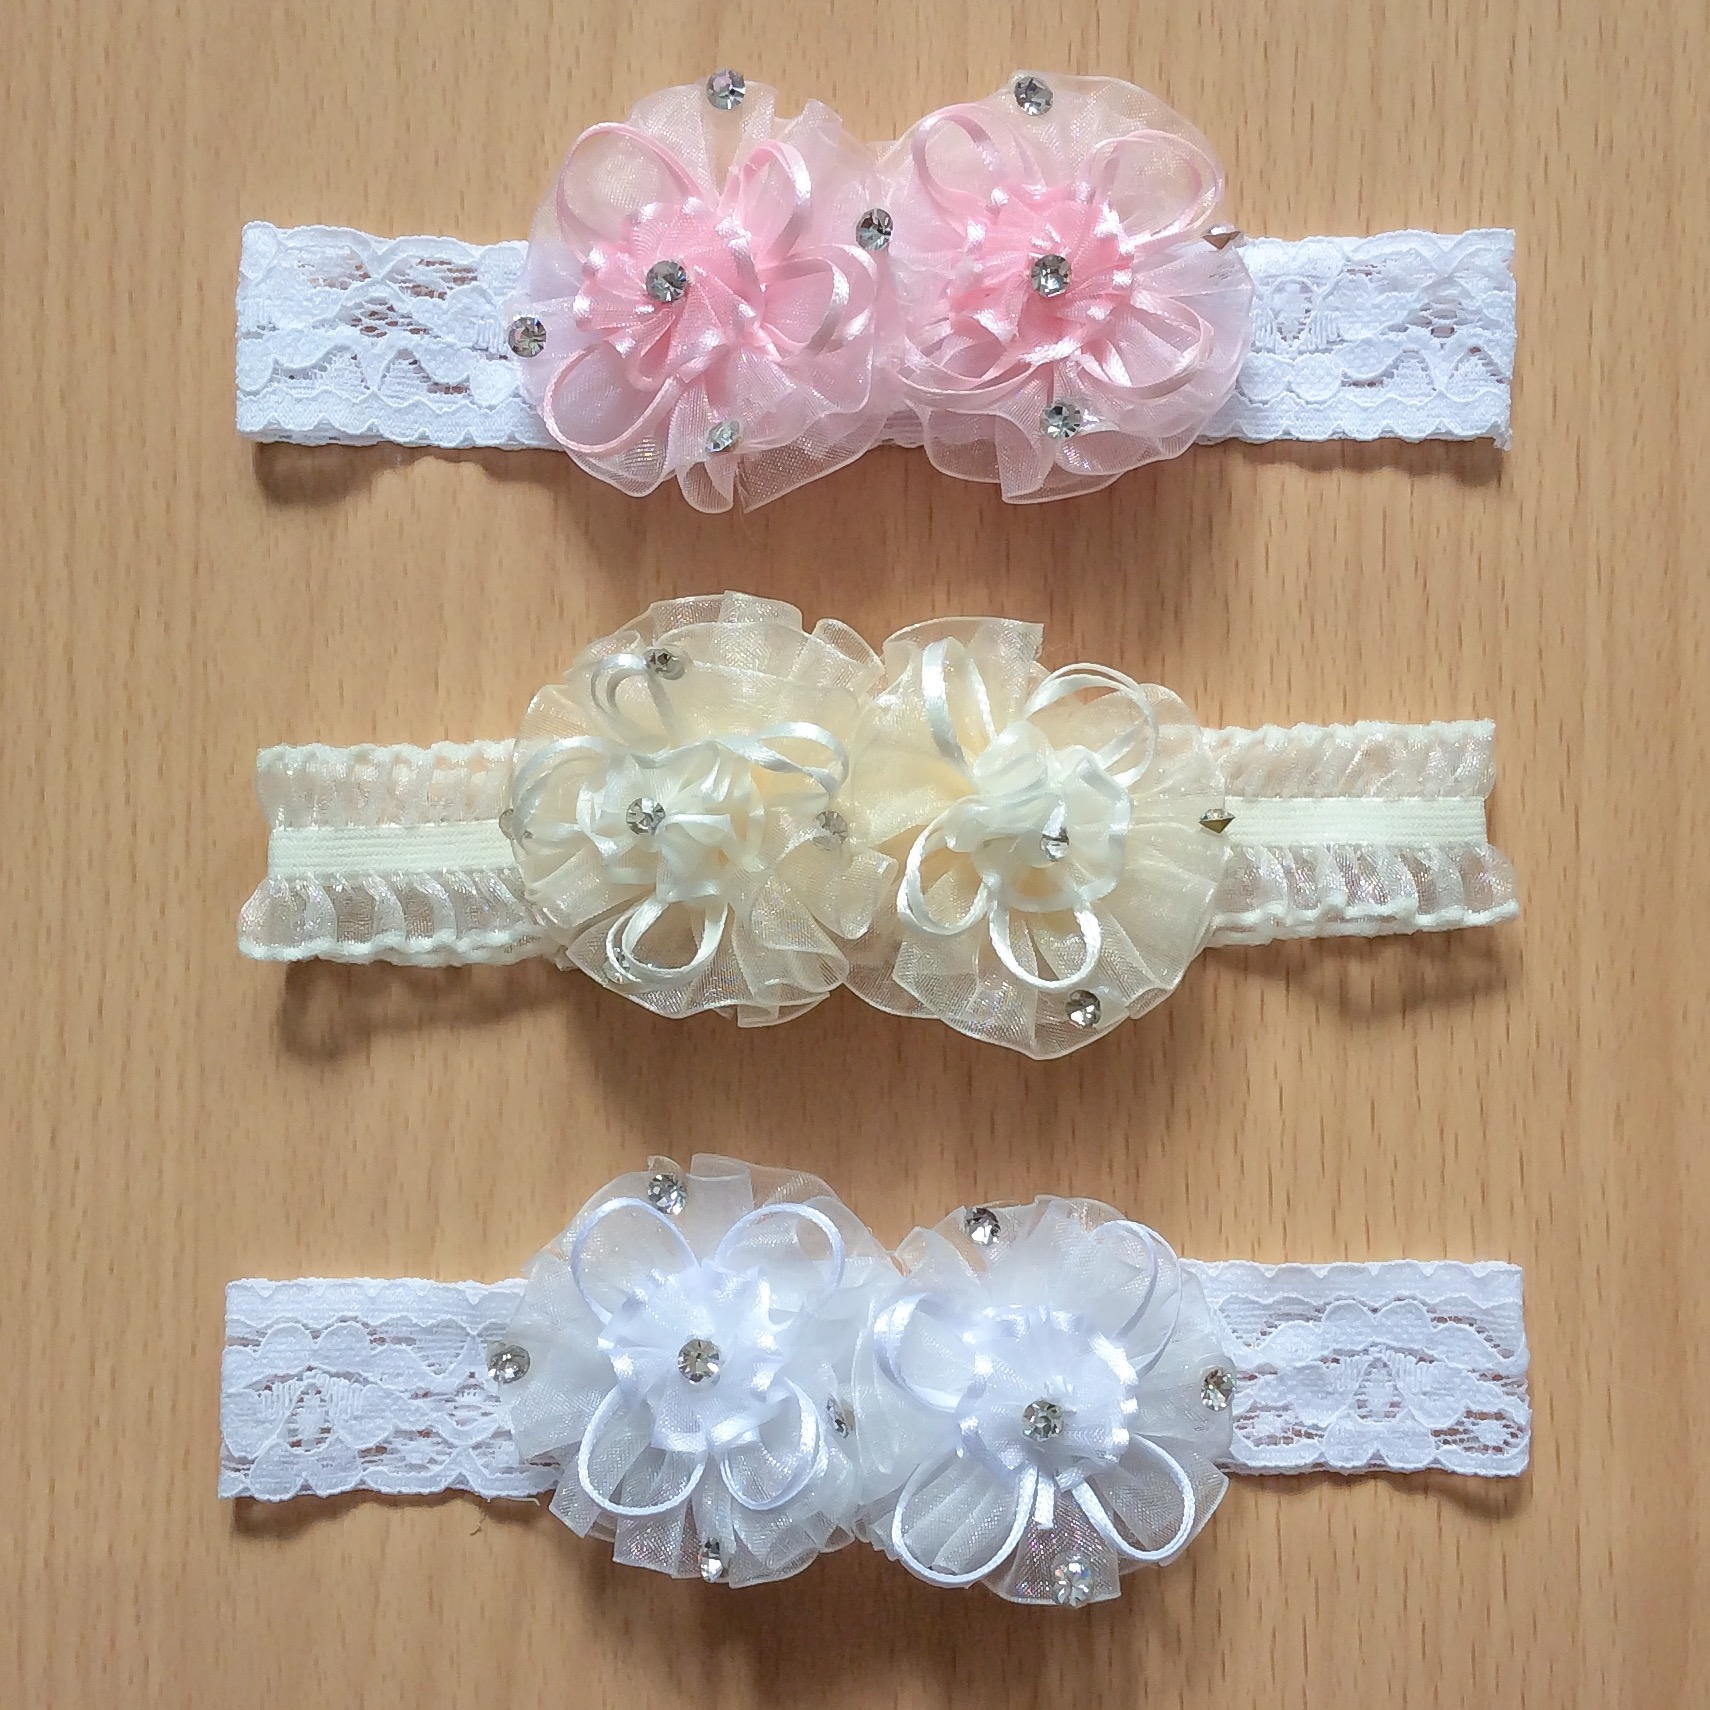 Organza Double Flower Headband, White, Pink & Ivory